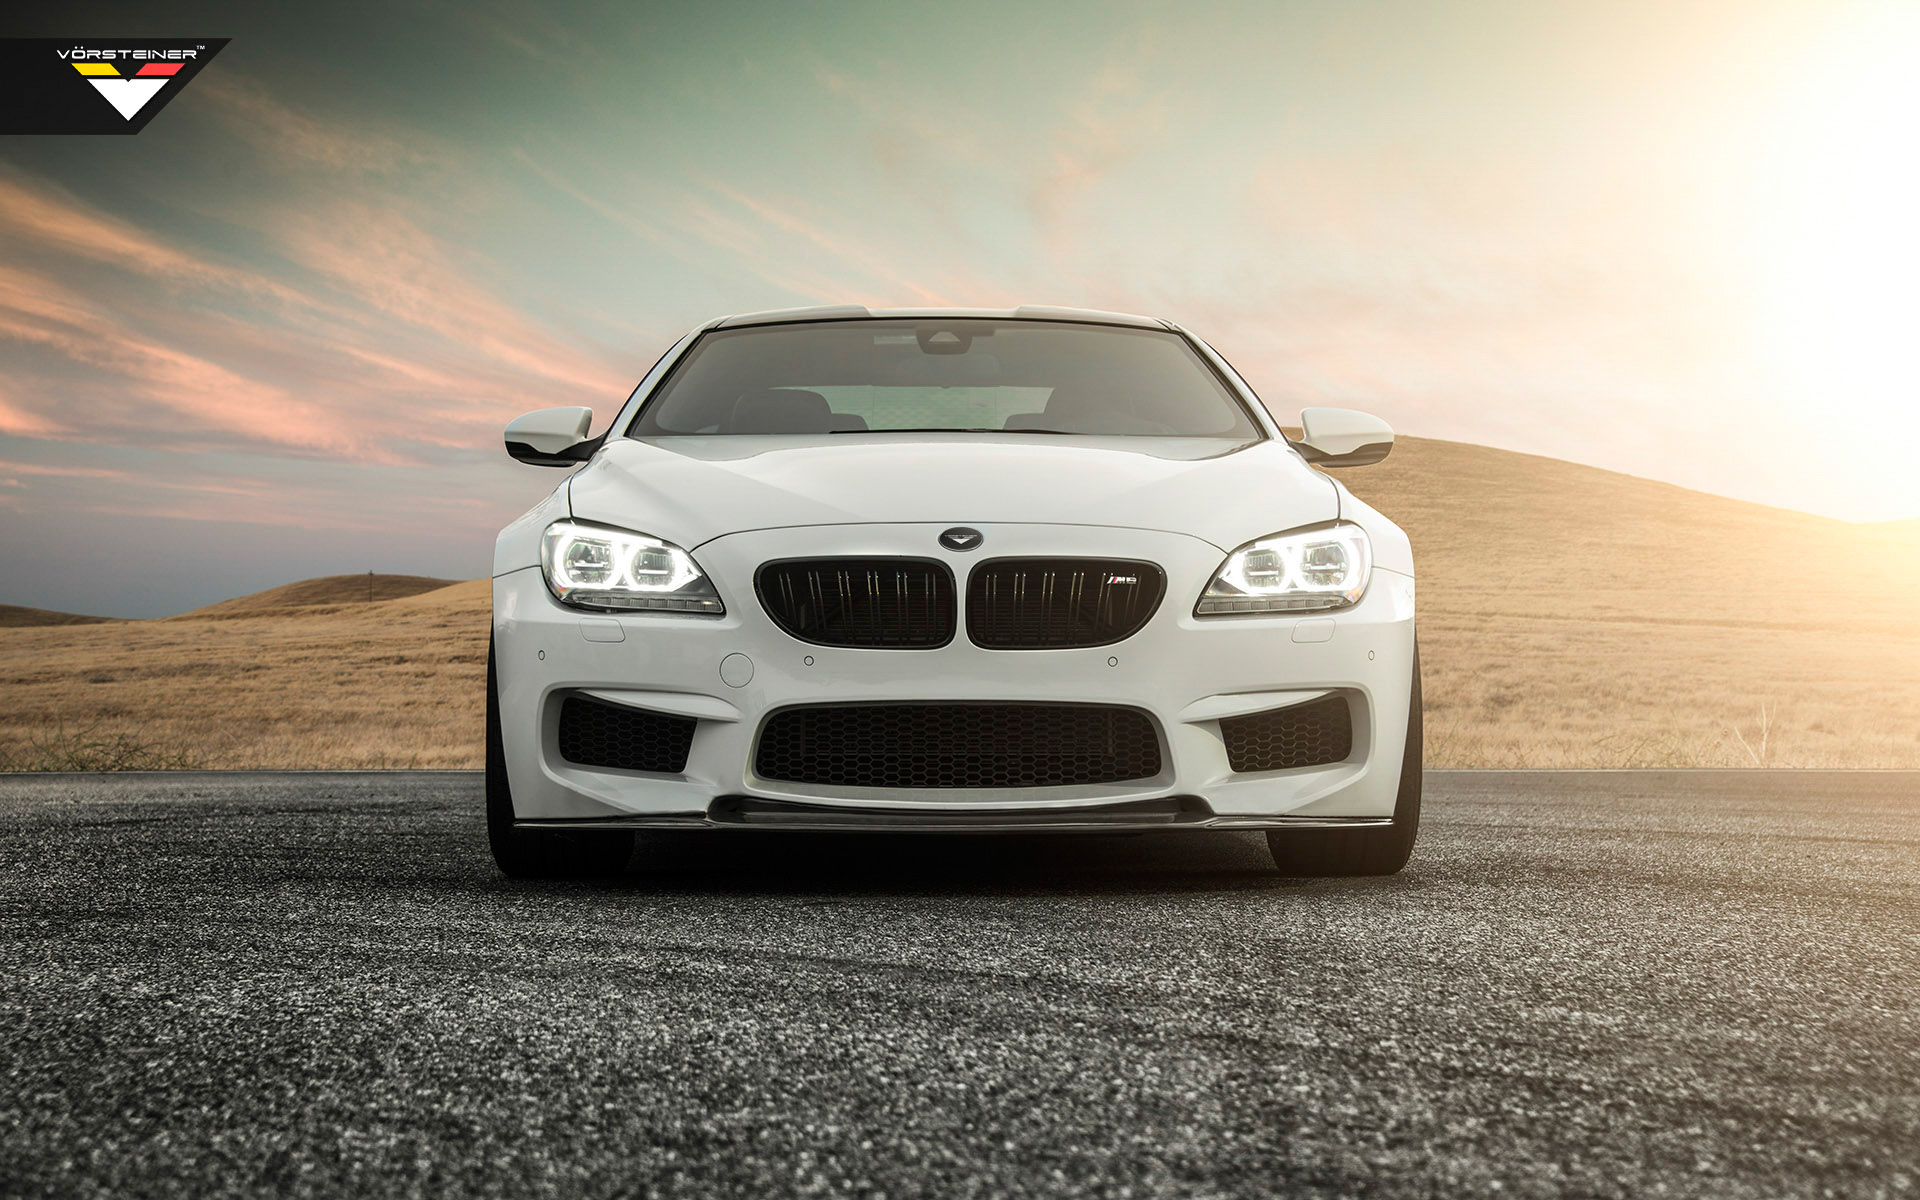 2015 Vorsteiner BMW M6 GTS V Wallpaper  HD Car Wallpapers